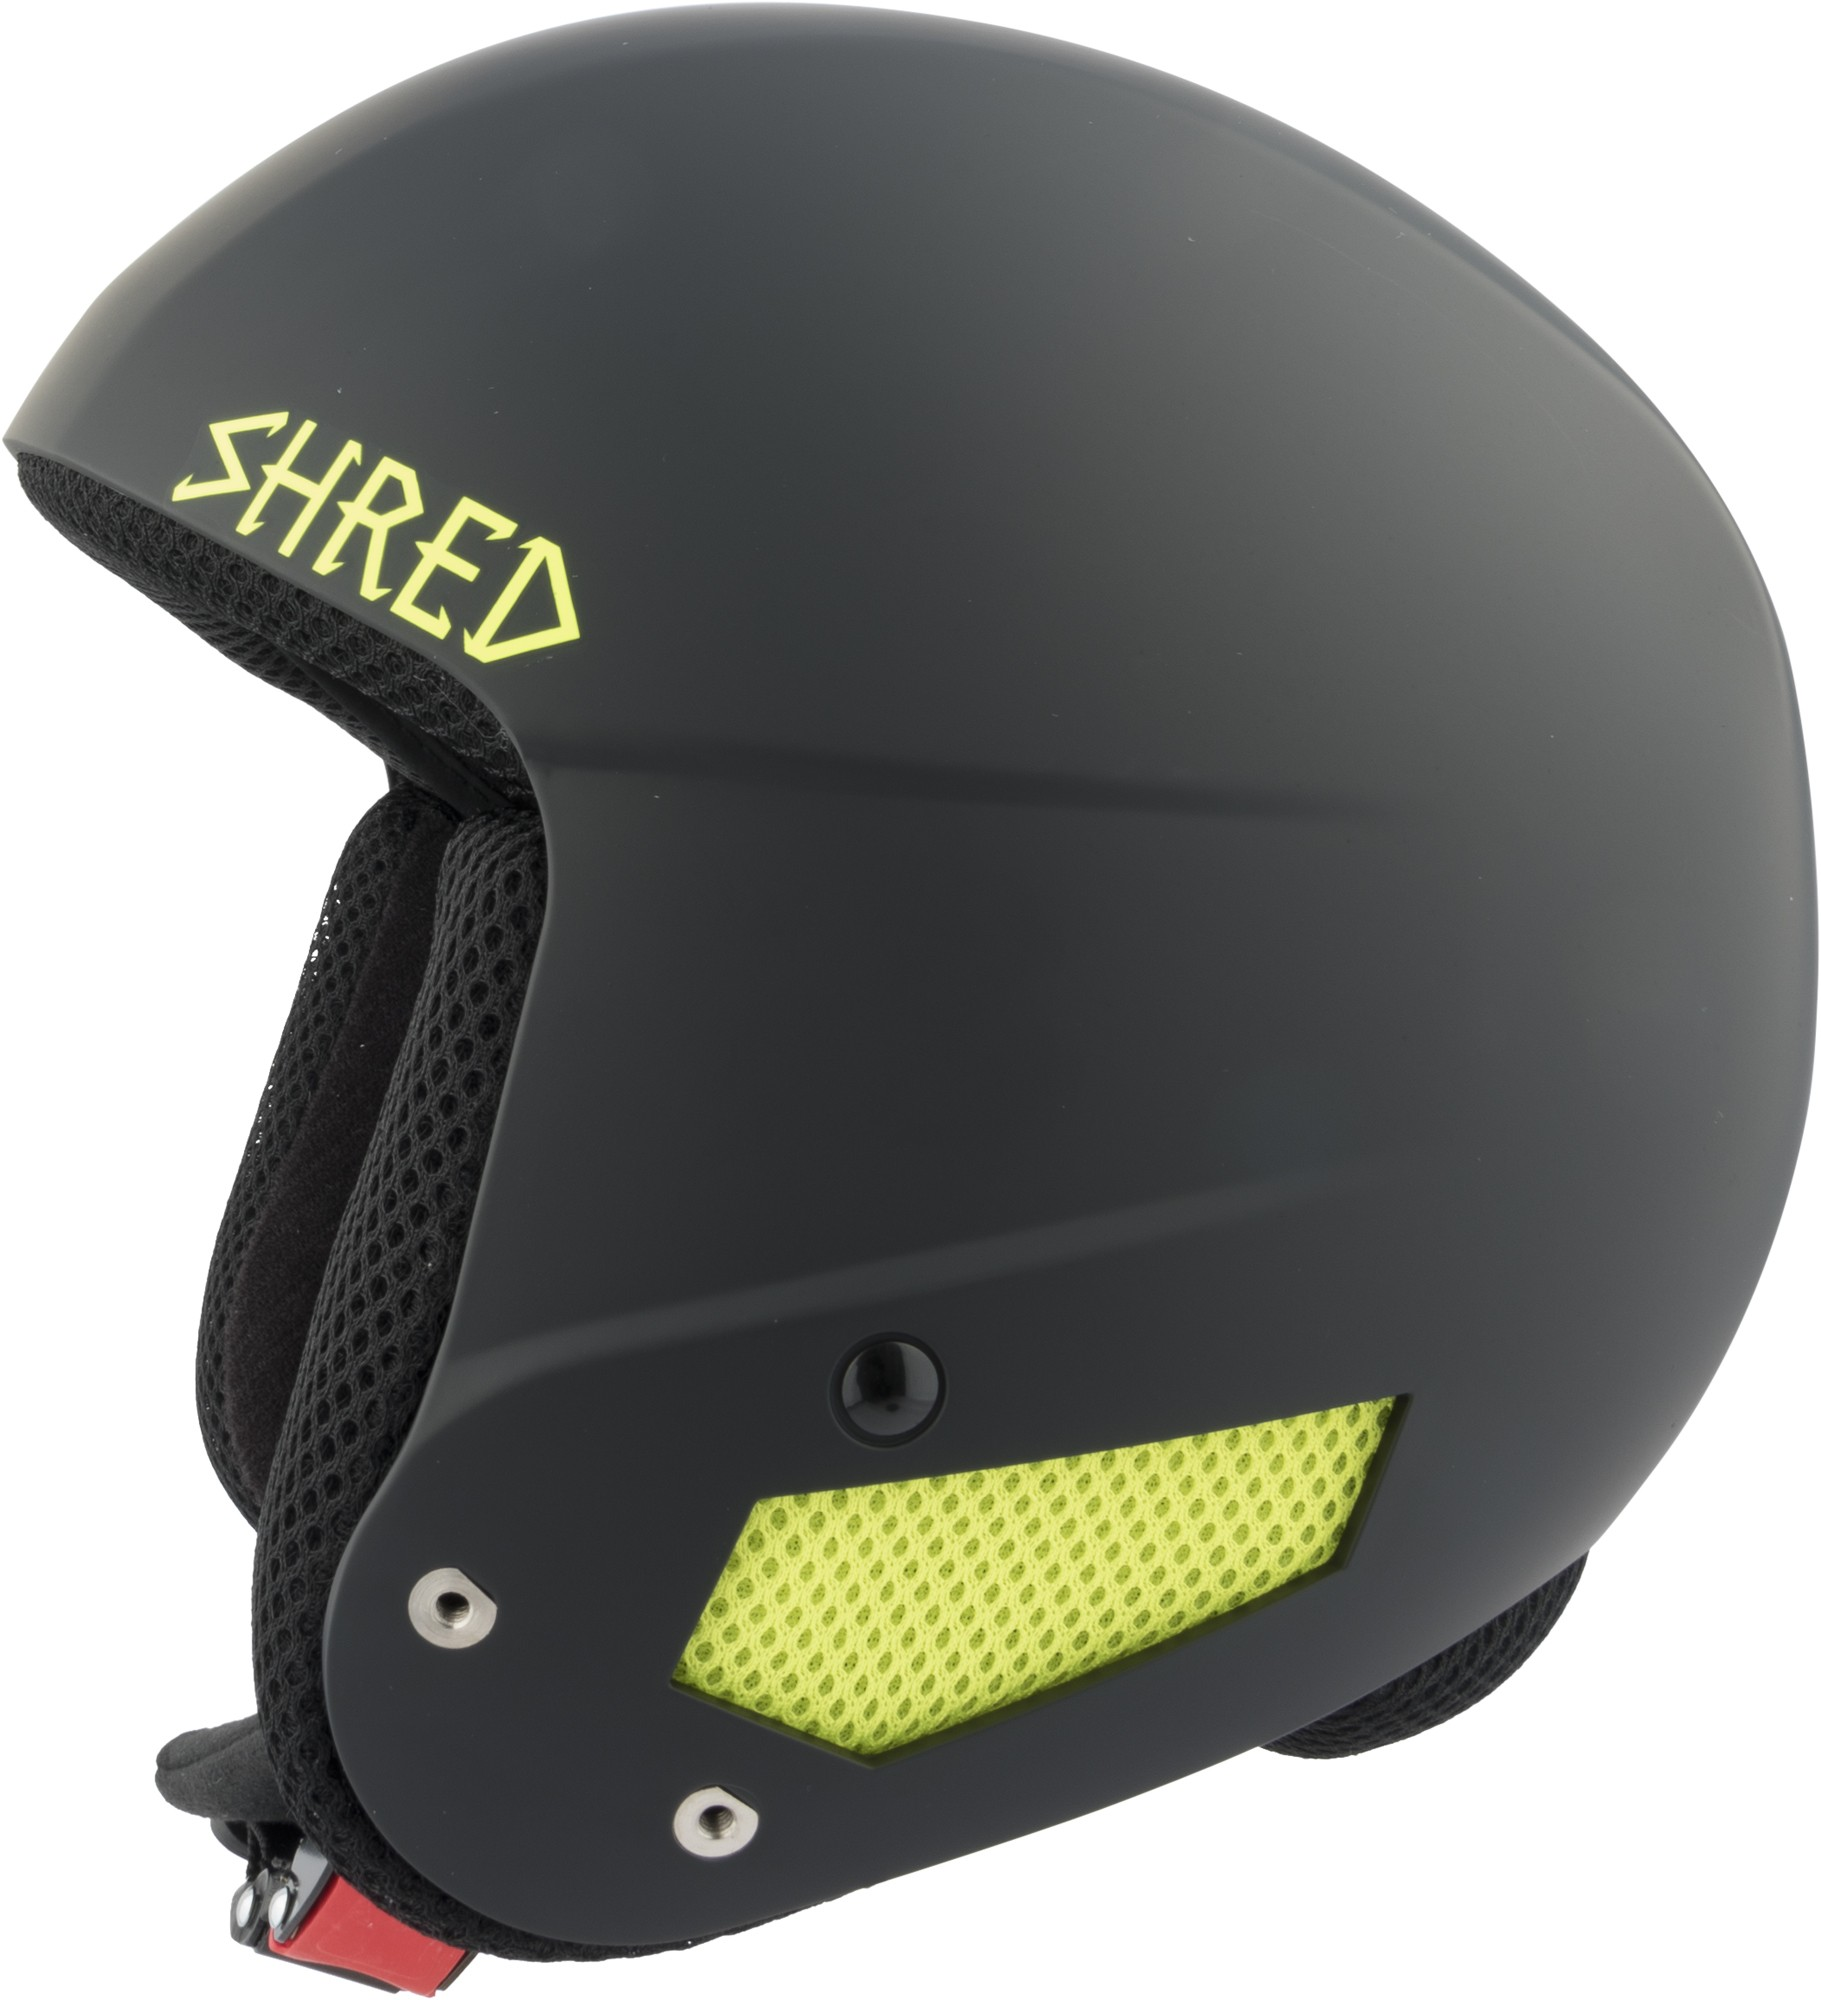 Shred Mega Brain Bucket RH FIS Bail ski helmet